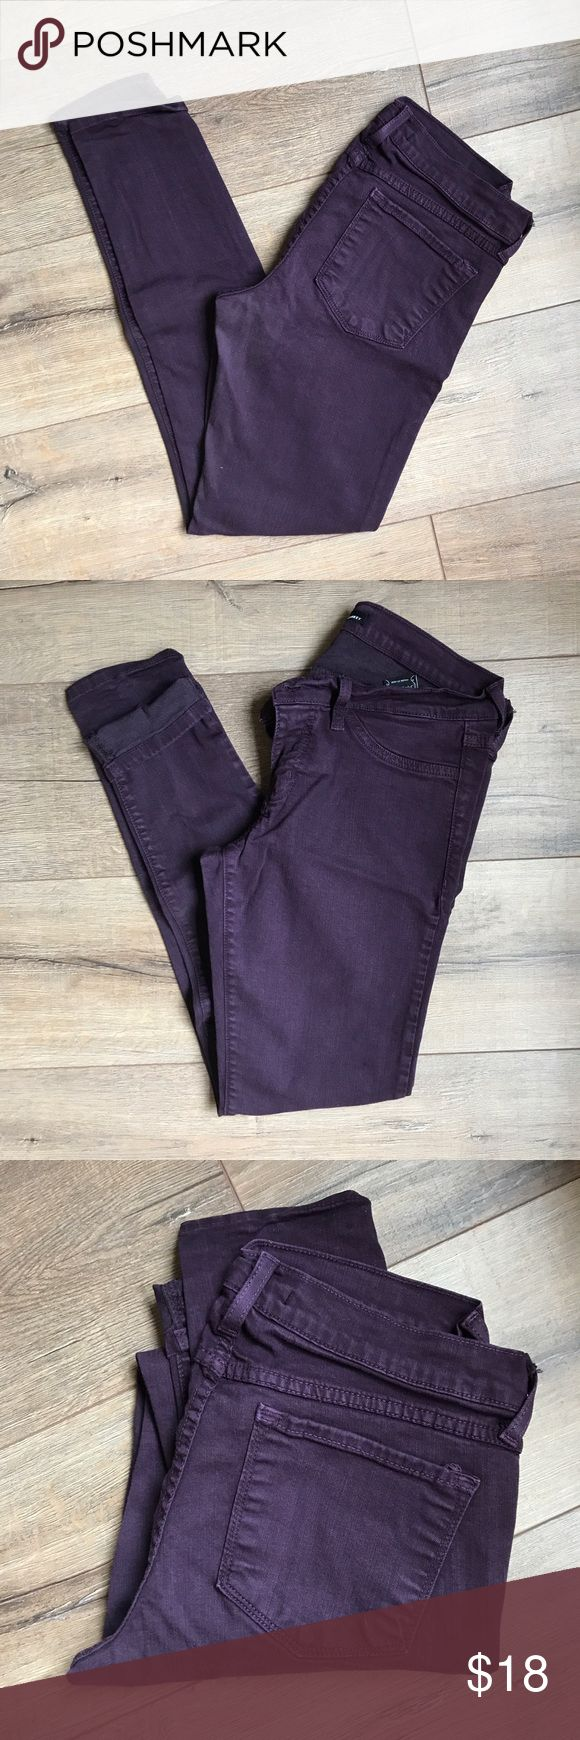 Apricot Lane Dark Purple Jeans These purple skinny jeans go great with many things!! They're stretchy and I loved having a fun color in my wardrobe! Flying Monkey Jeans Skinny